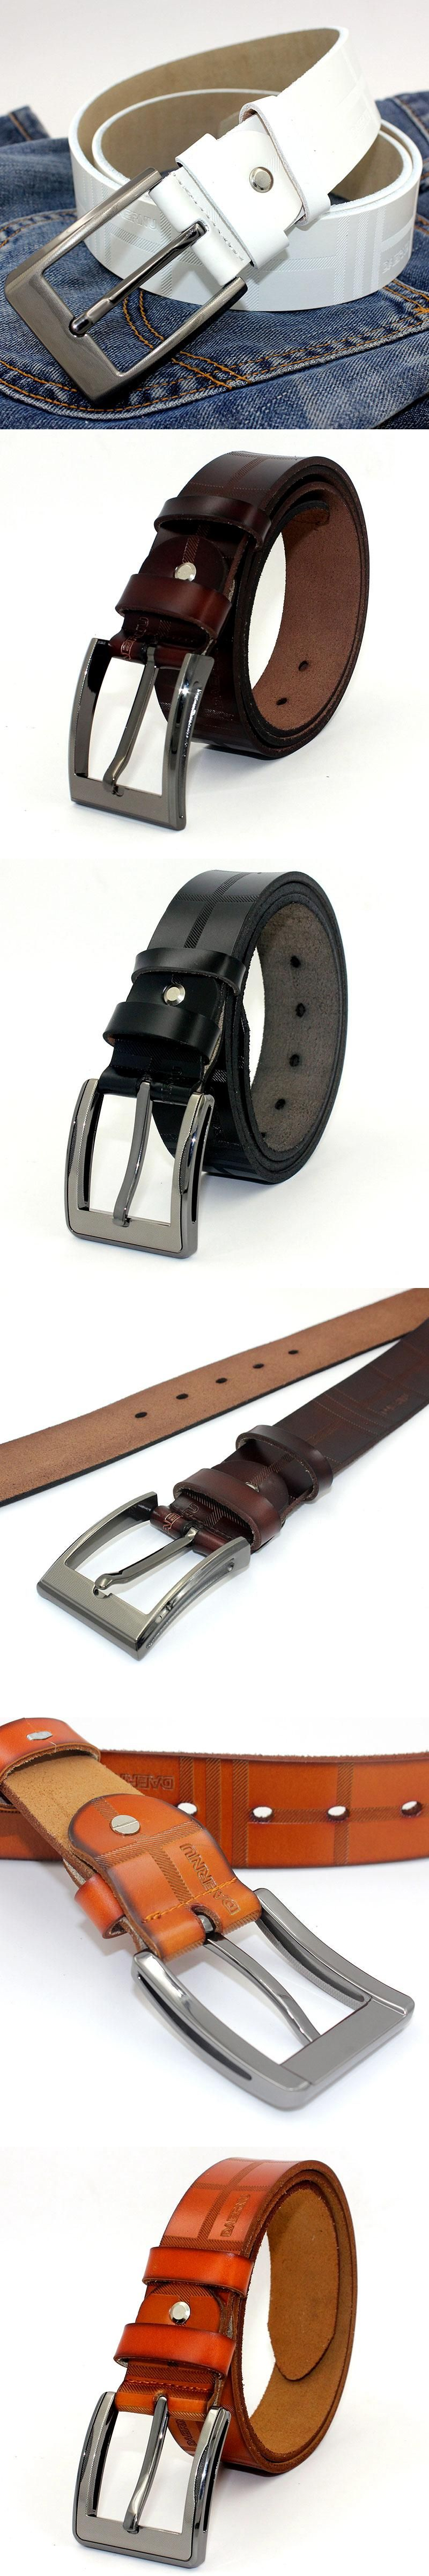 Soft Leather Belt Men High Quality Designer Belts For Men s Casual Genuine  Leather Waist Belt Pin c0a252f8cf9